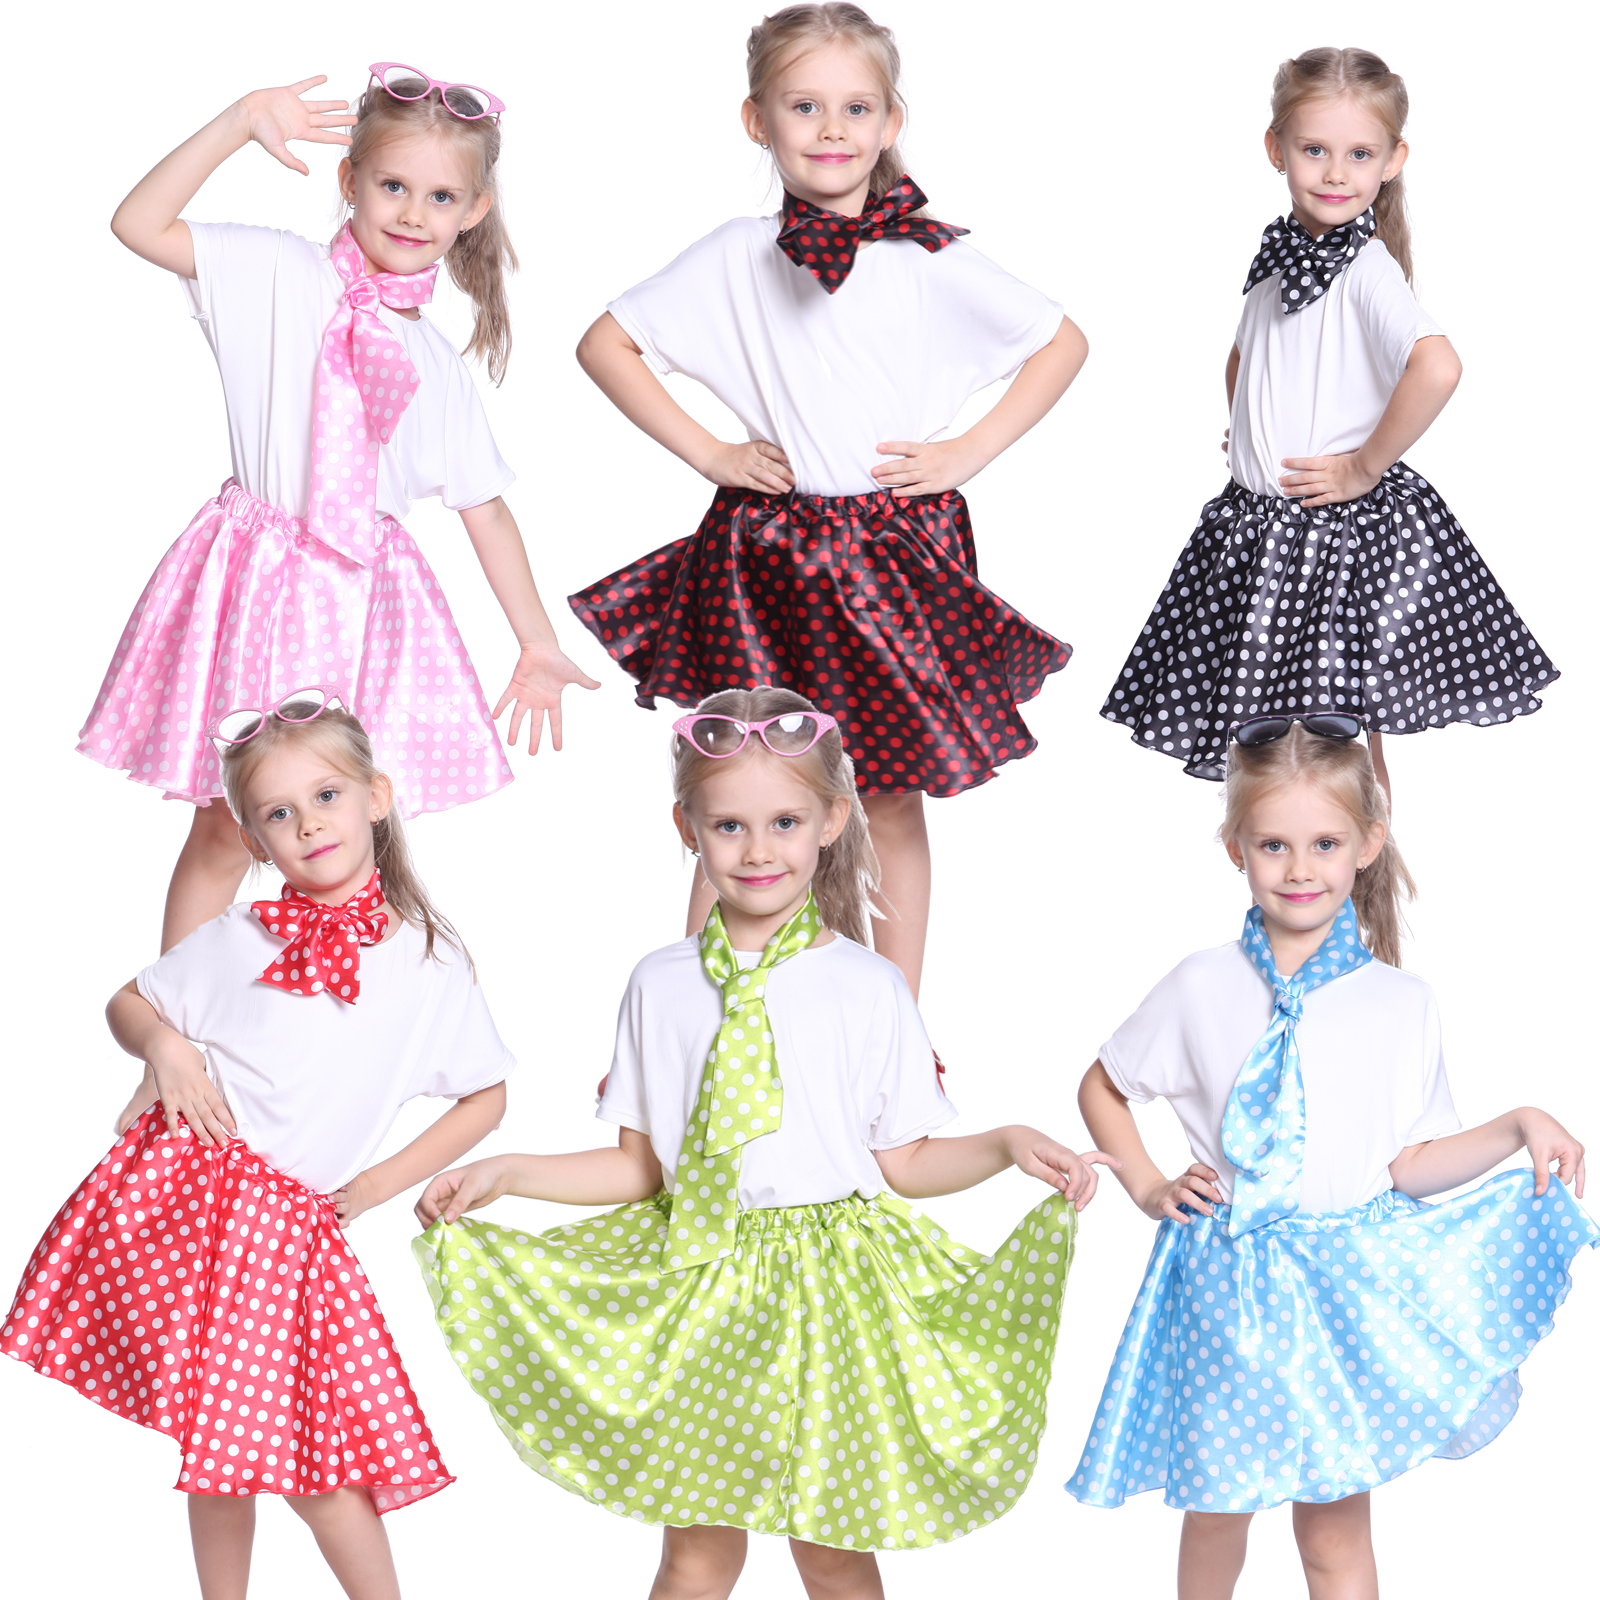 jupe rock n roll pois foulard 6 couleur 1950 grease 5 12 ans fille enfant 50s ebay. Black Bedroom Furniture Sets. Home Design Ideas